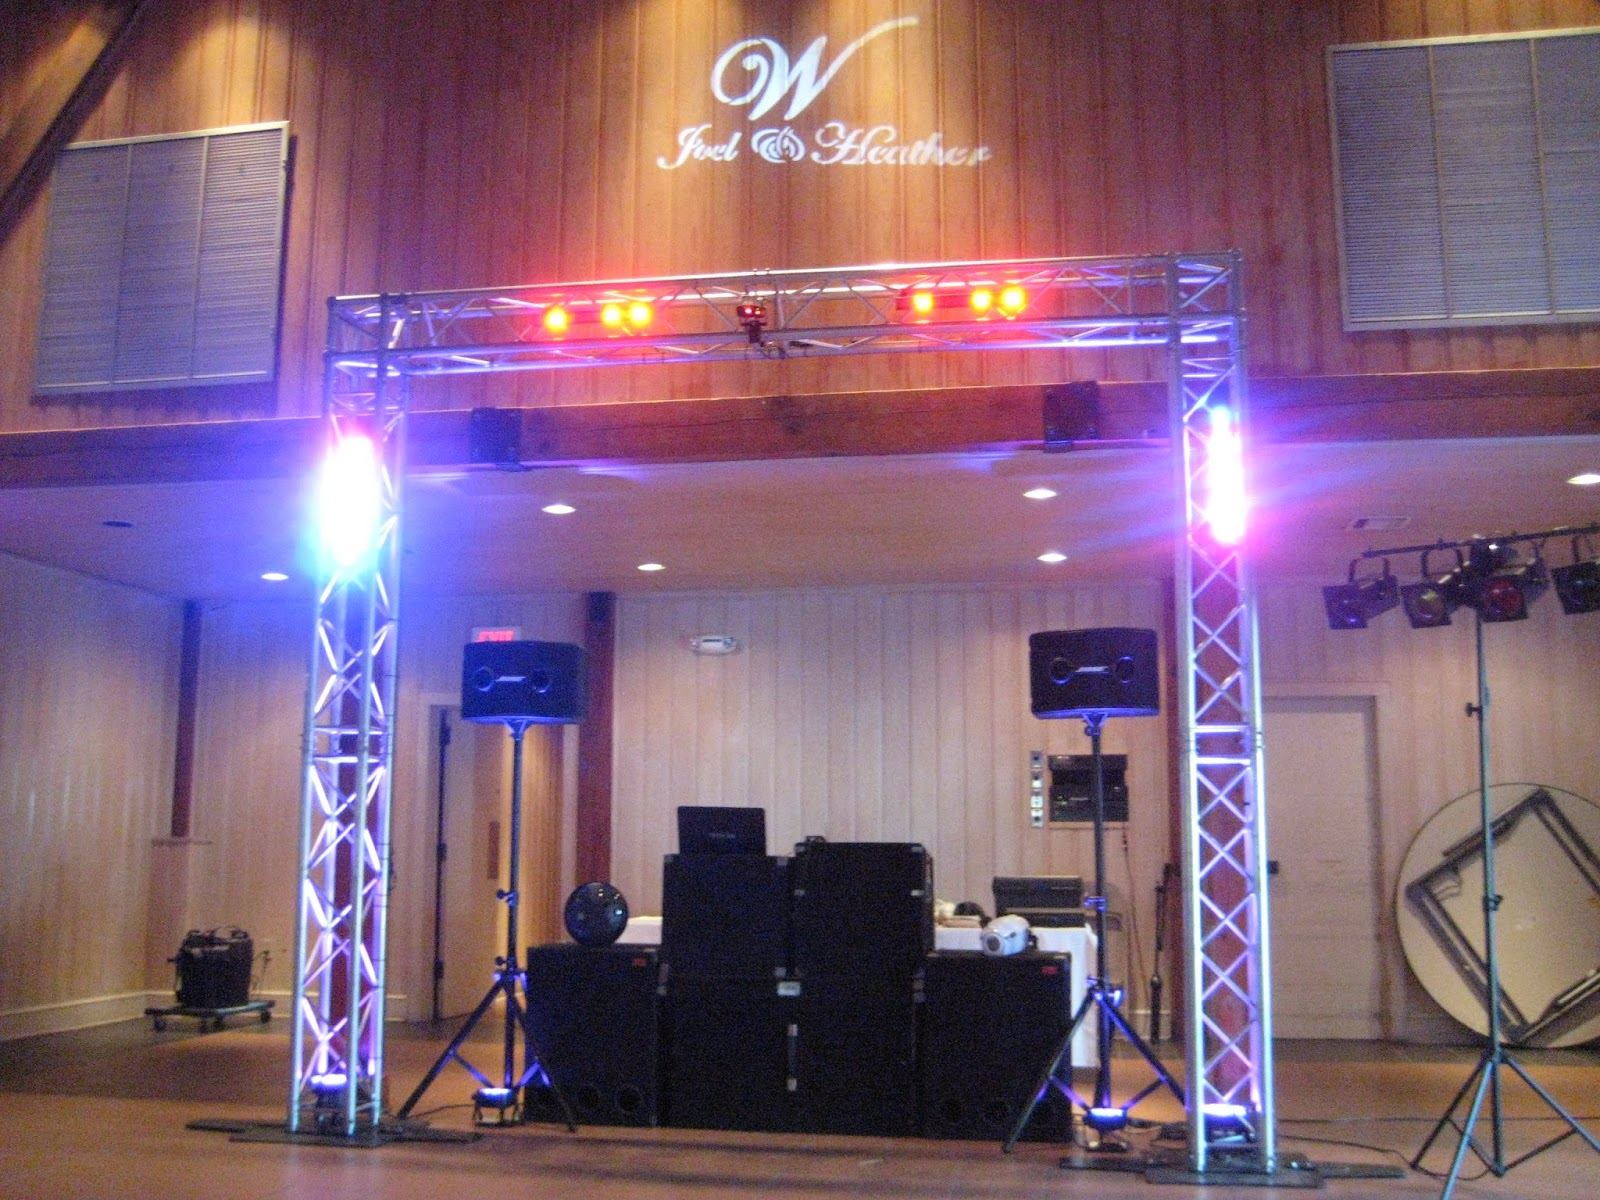 Dj disc jockey karaoke photo booth led decor wall up whether its a sound system for your special eventwedding sound with dance lights sound with dance floors a ceremony system and karaoke we have it all mozeypictures Gallery